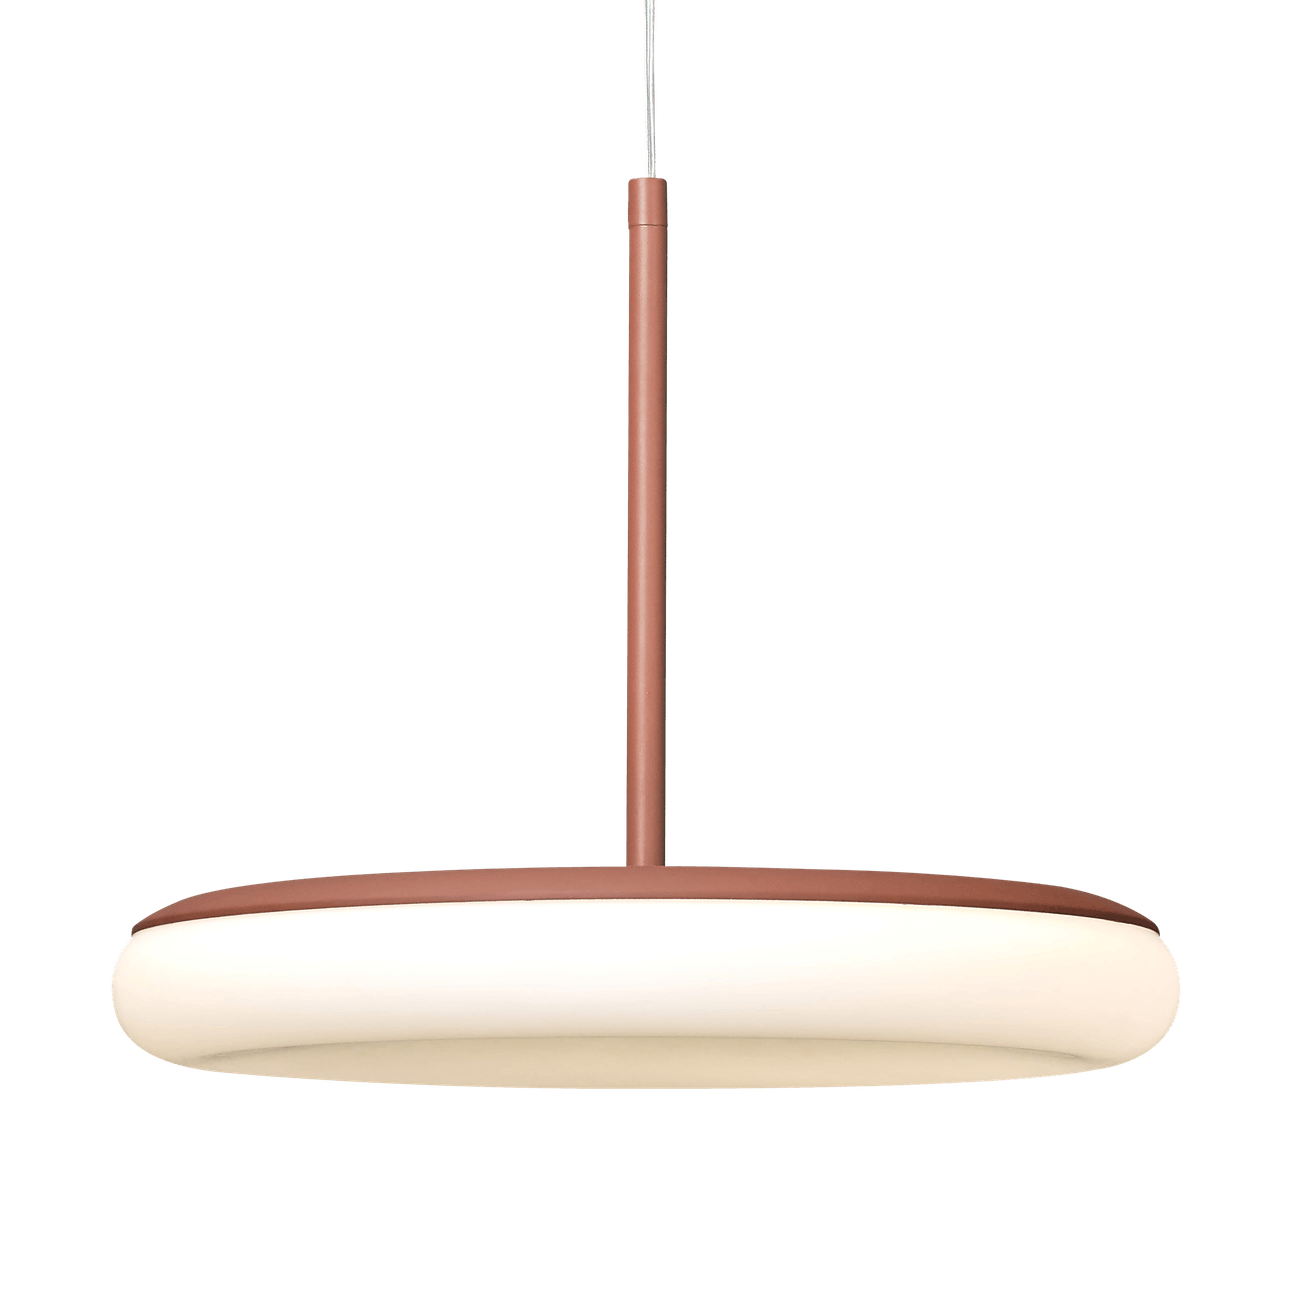 Ago lighting mozzi large pendant terracotta lit haute living